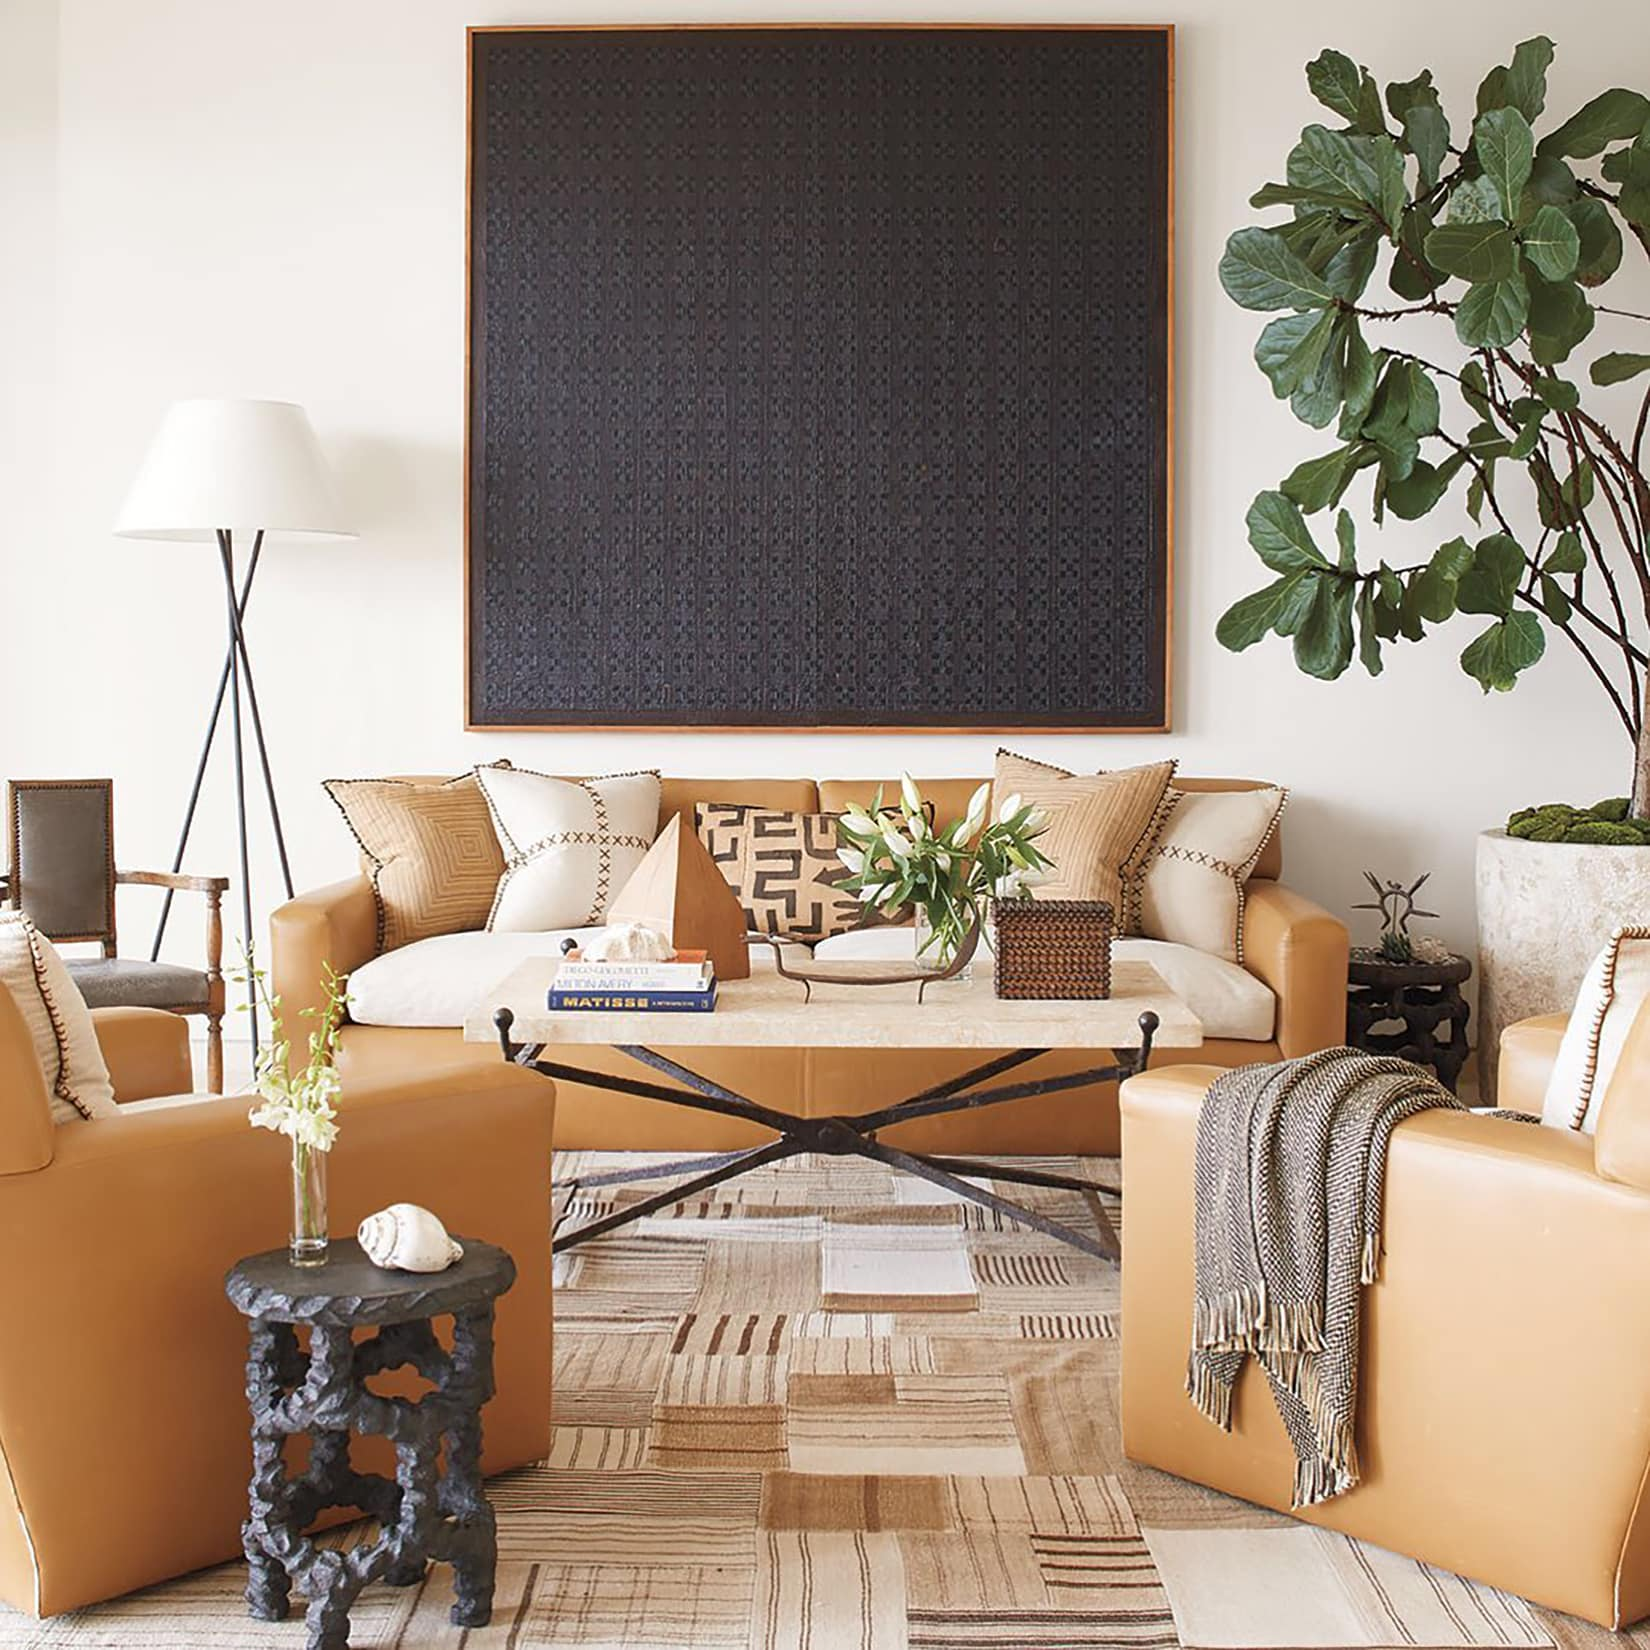 Richard Hallberg Design featured in the winter issue of Milieu via Cindy Hatterley's blog